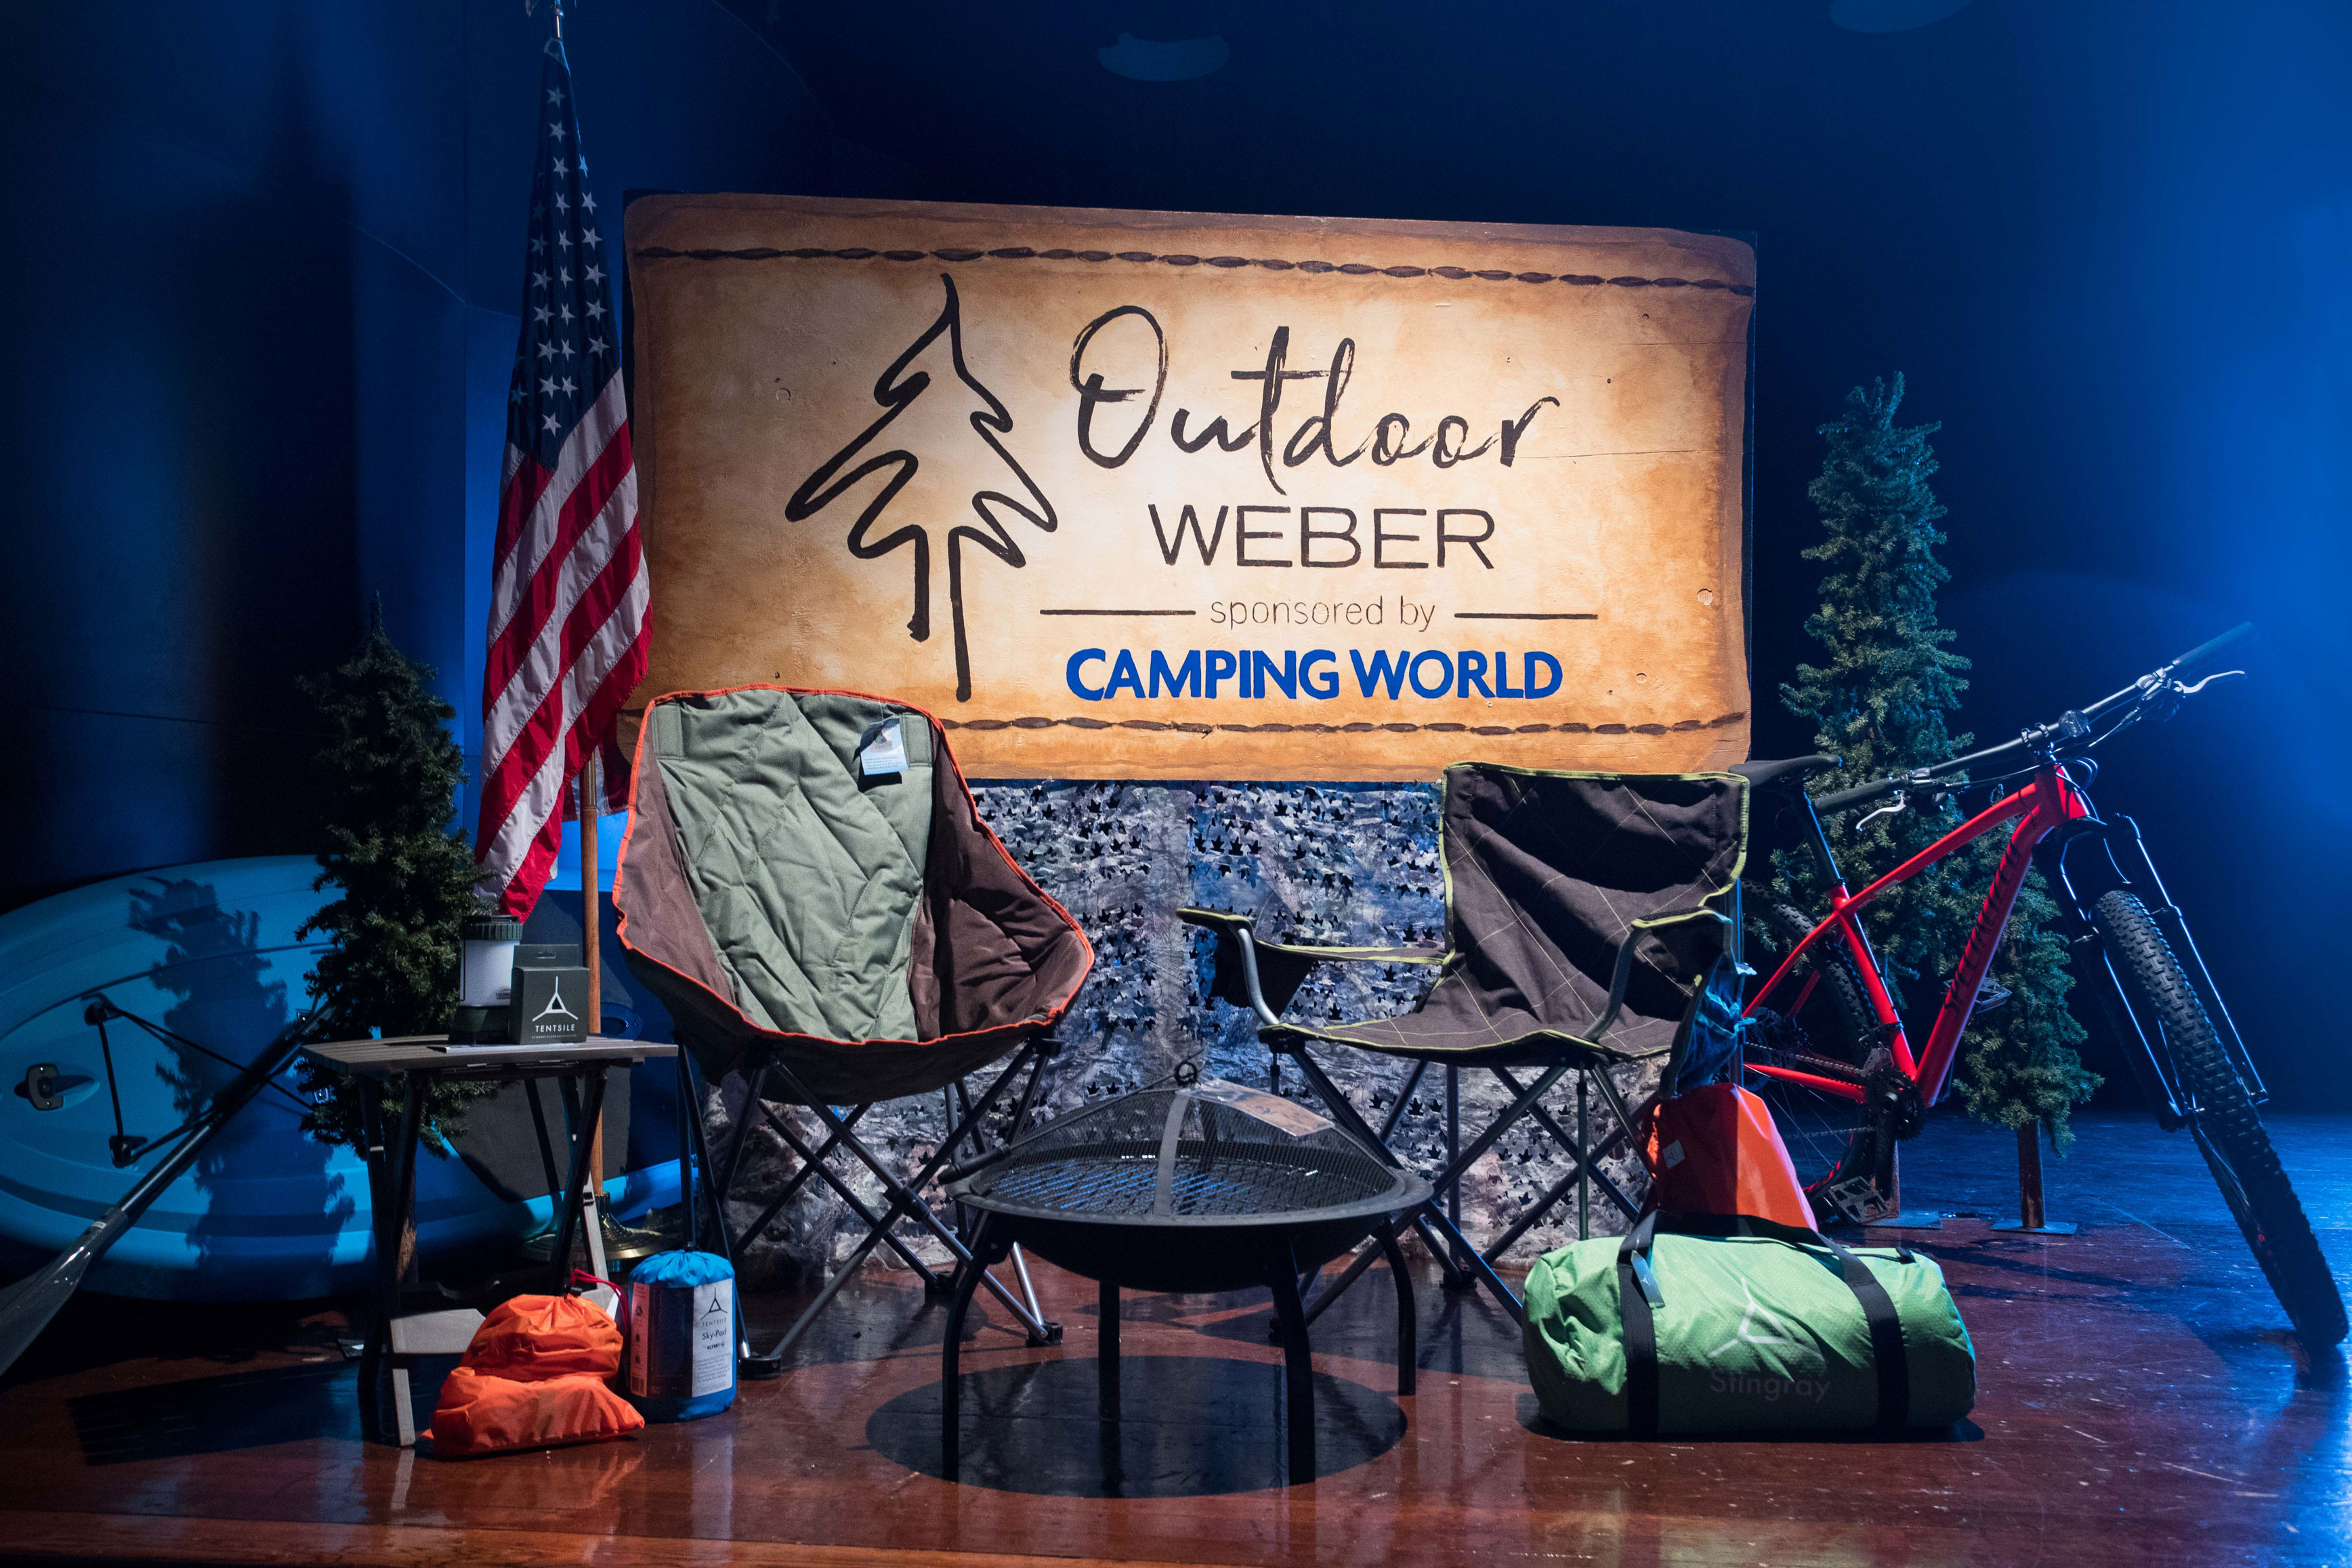 Outdoor Weber competition